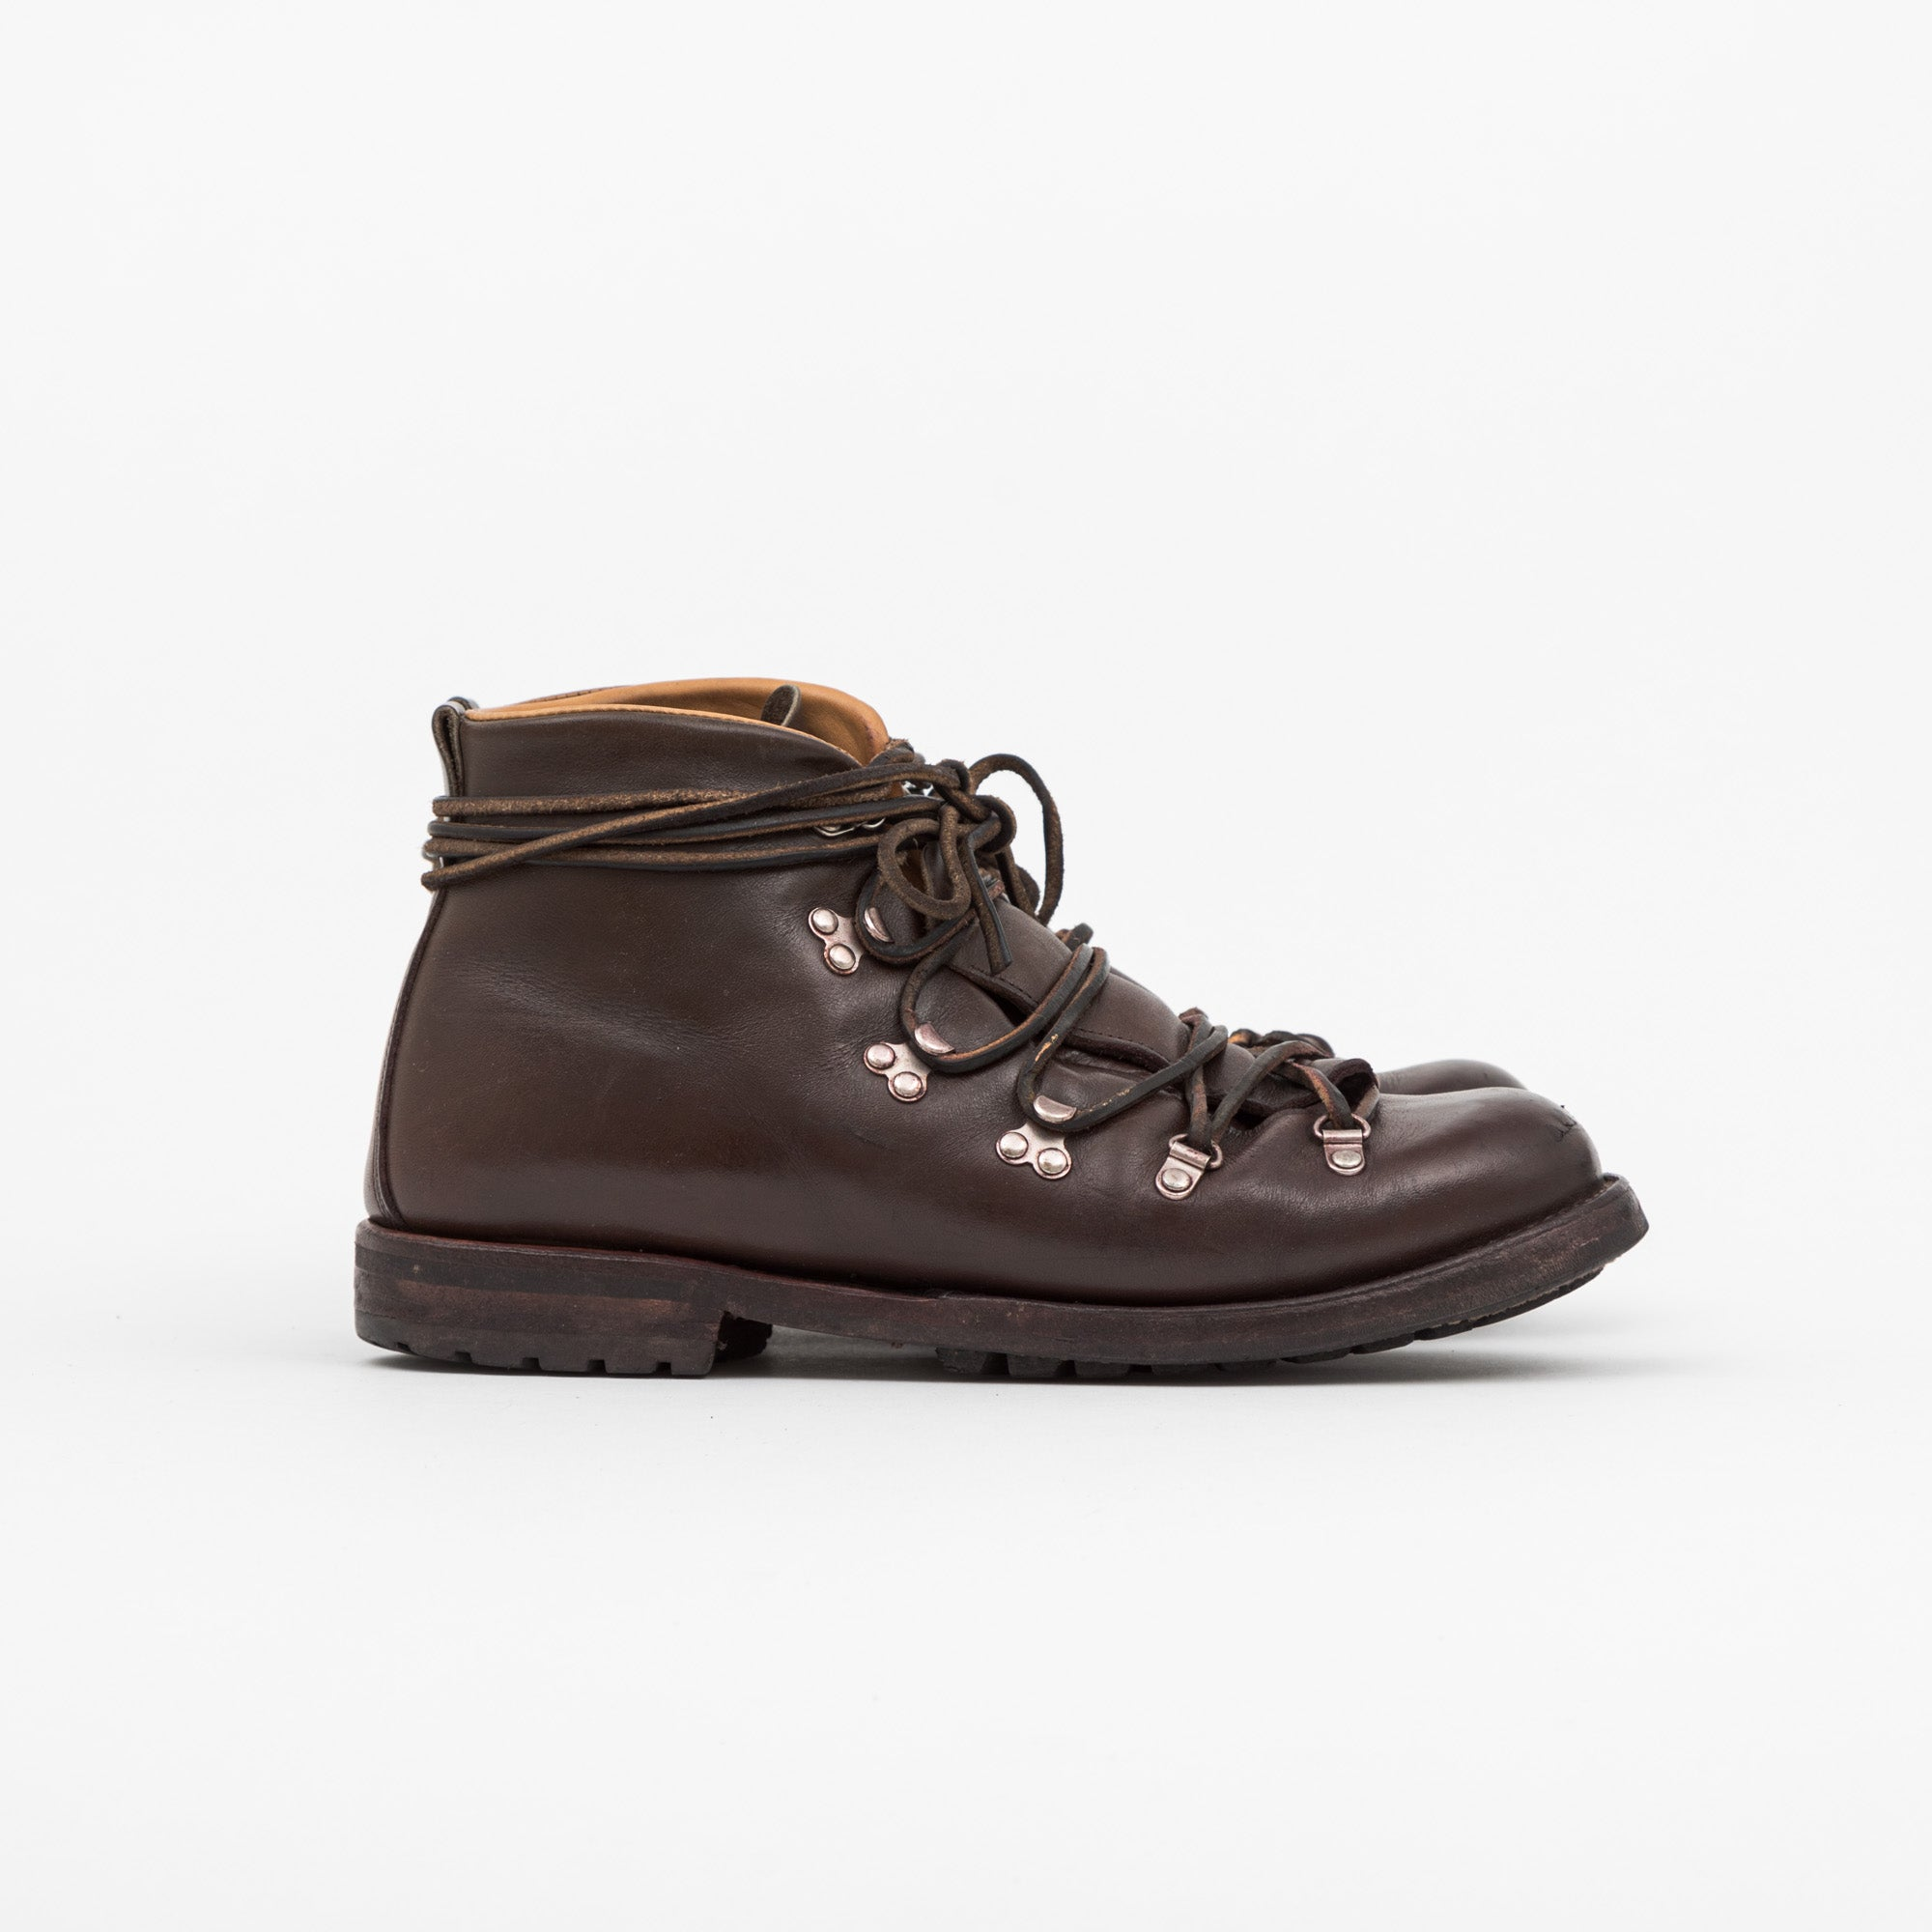 Viberg Boot Leather Ebony Latigo Hiking Boots